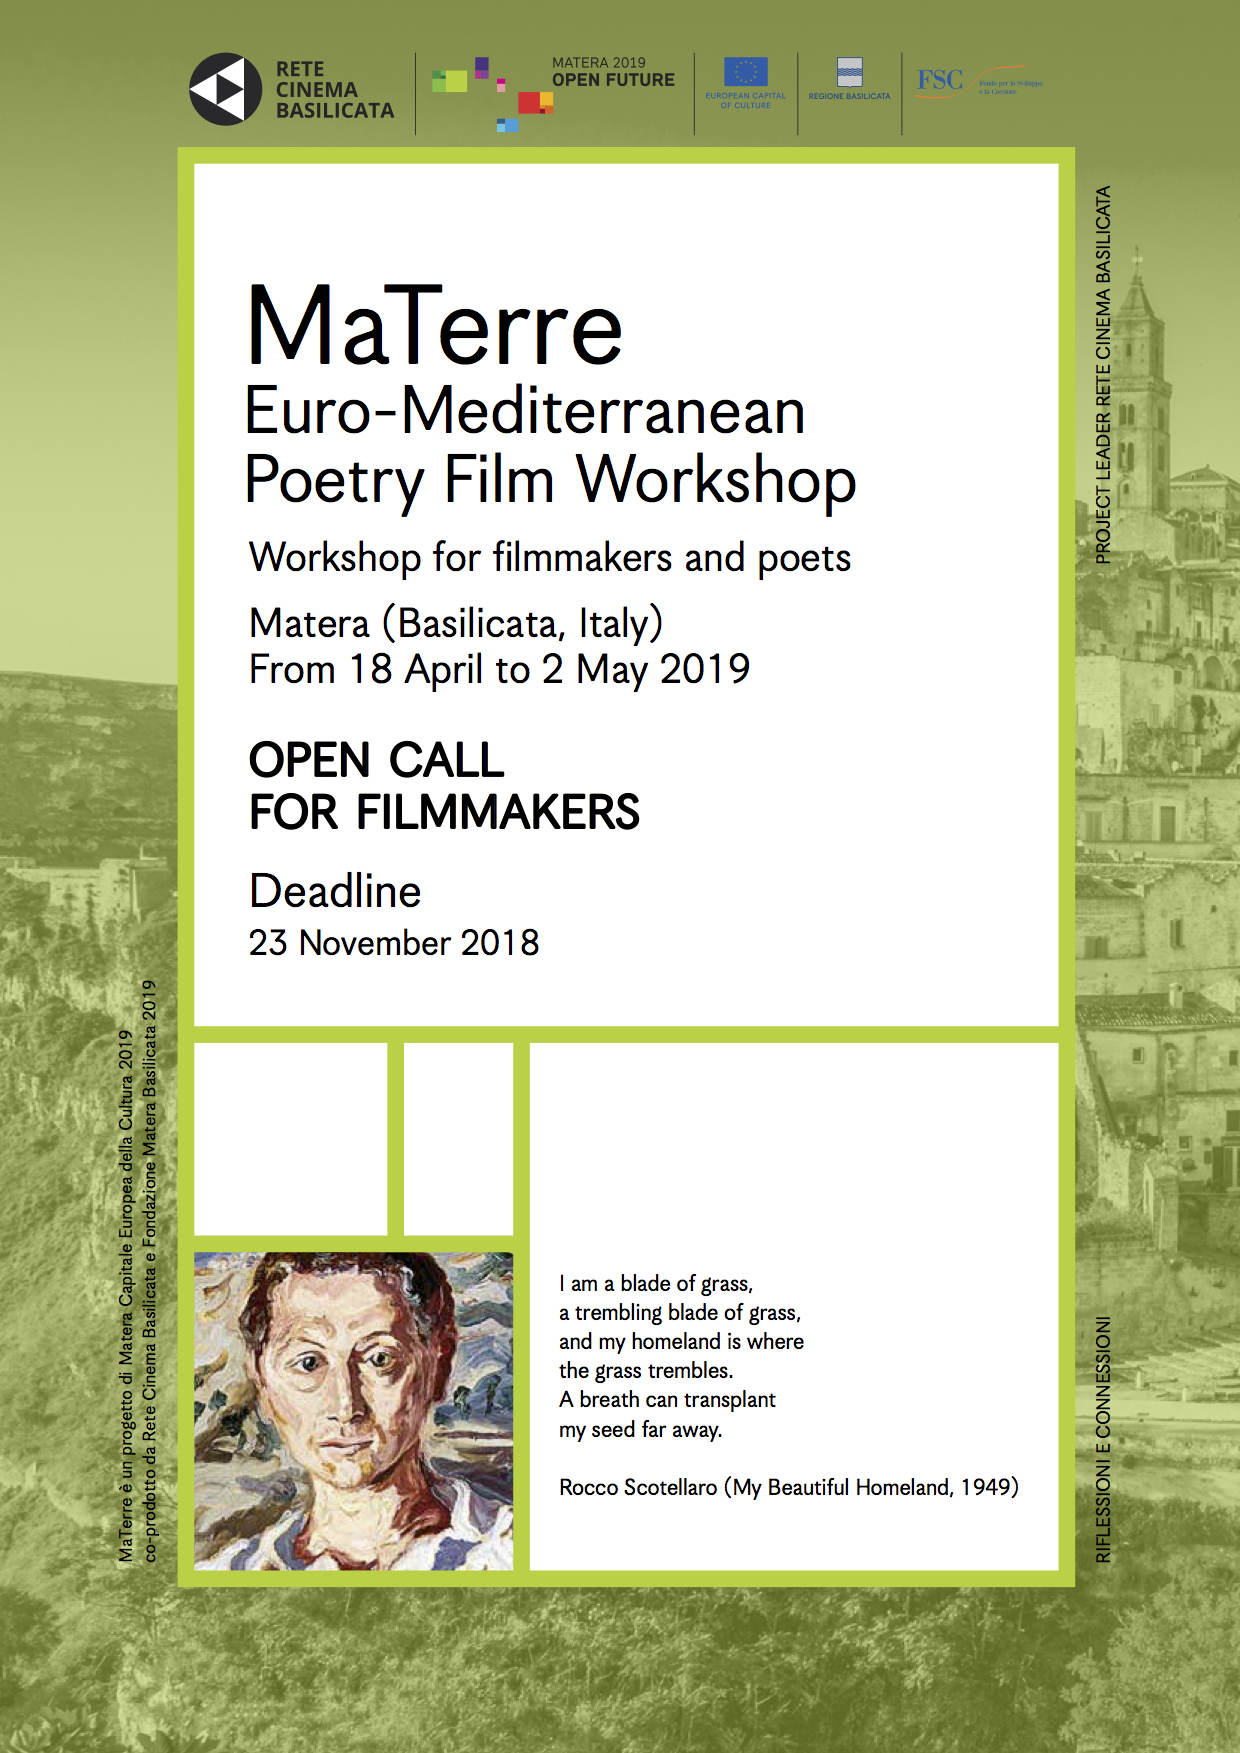 MaTerre2019: Open call filmmakers!